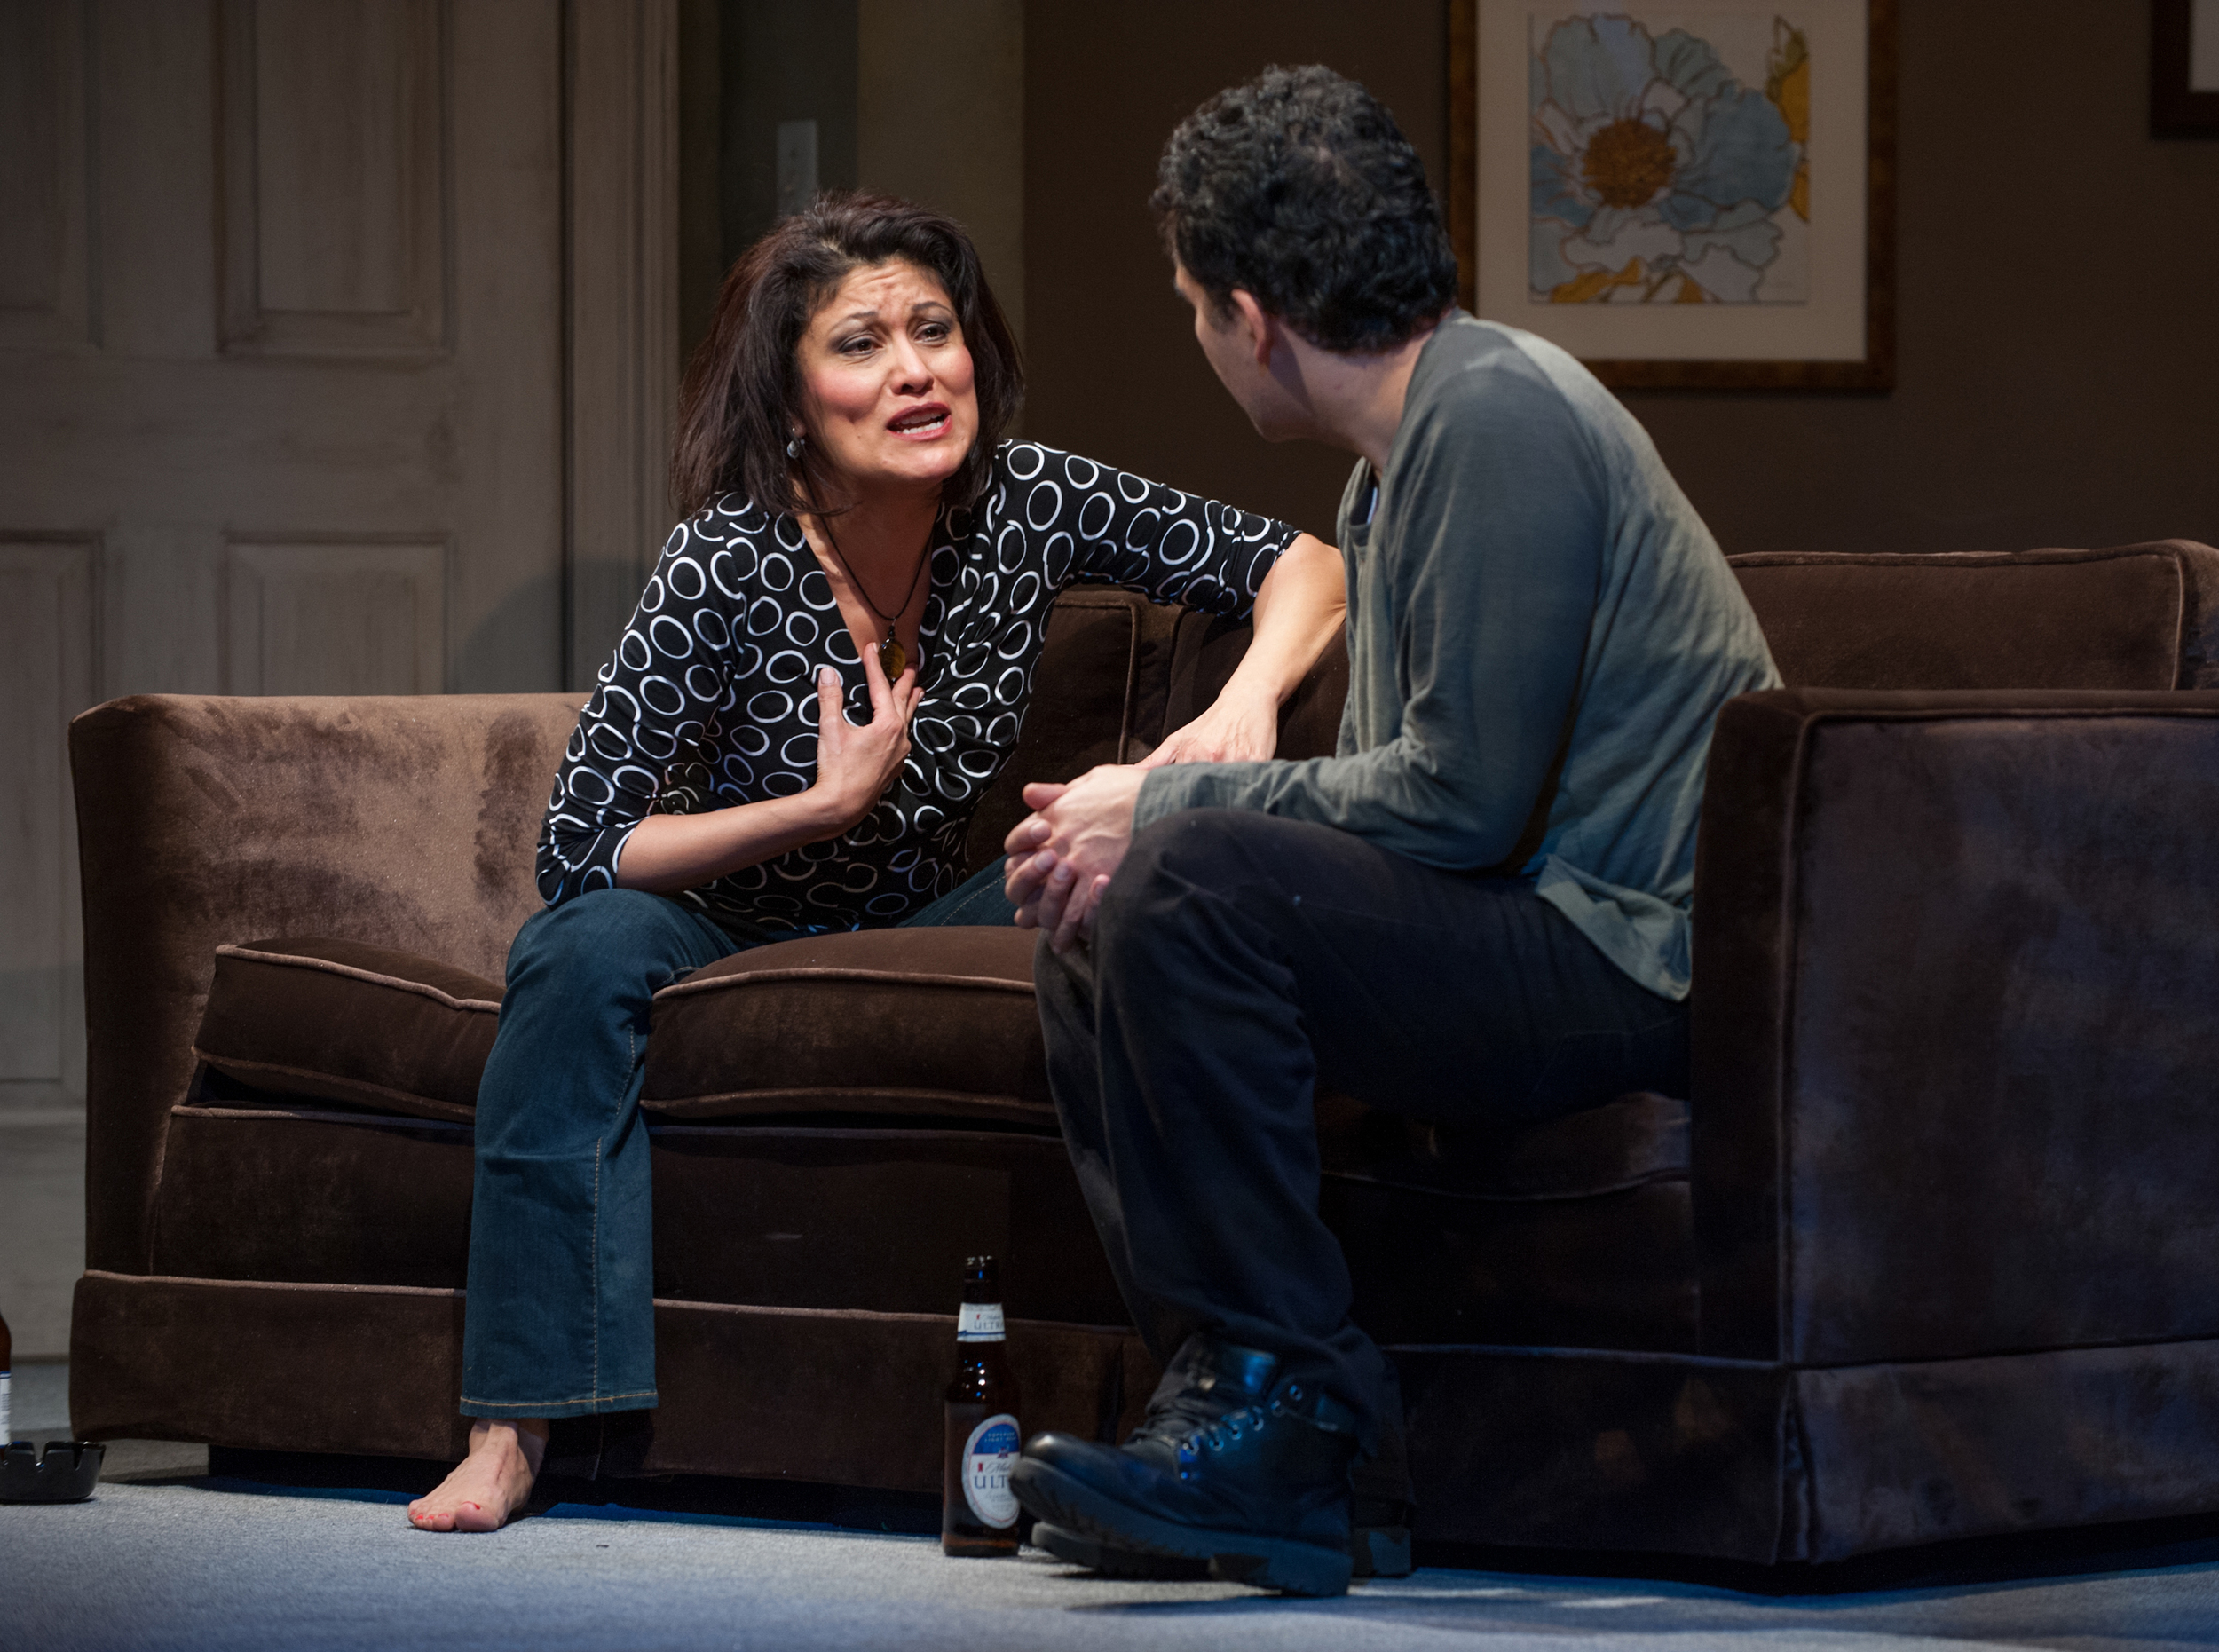 Sandra-Marquez-in-Steppenwolf-Theatre-Company's-production-of-THE-MOTHERFUCKER-WITH-THE-HAT-by-Stephen-Adly-Guirgis-directed-by-Anna-D.-Shapiro..jpg